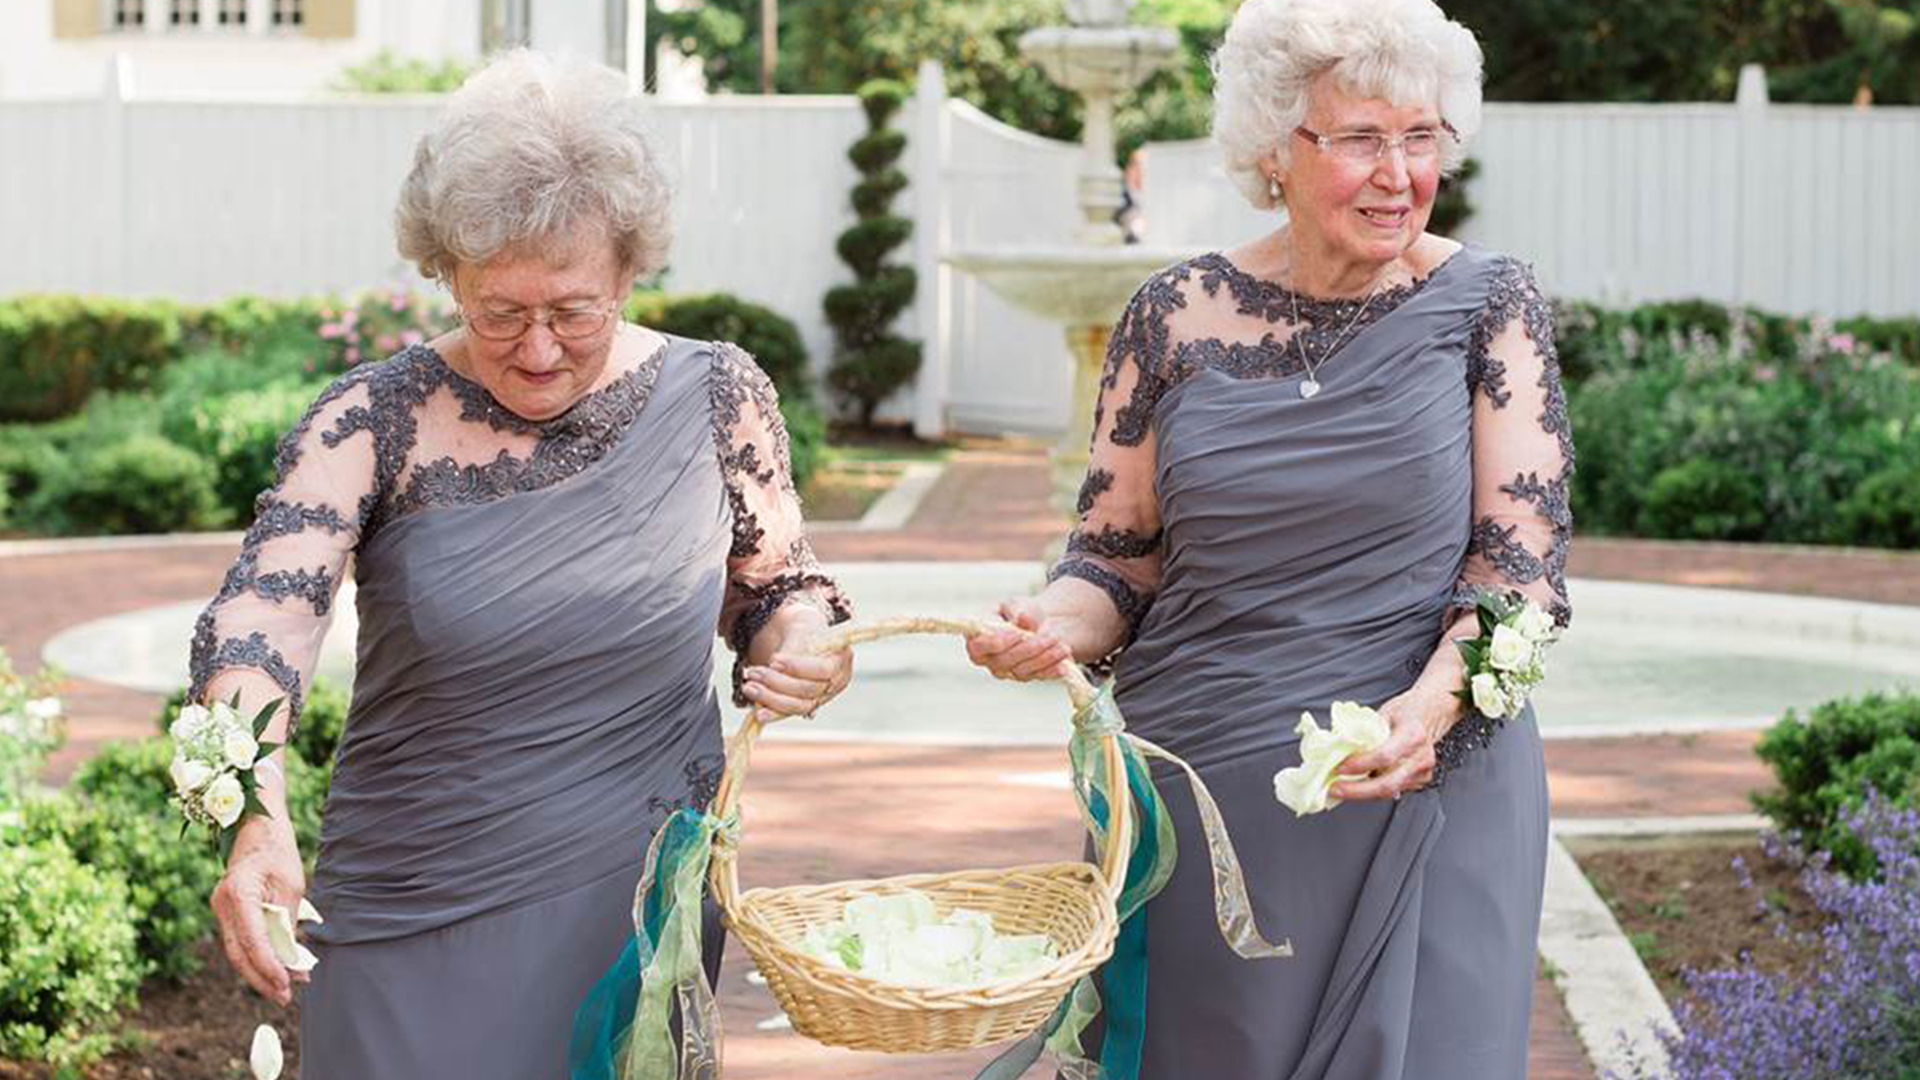 These adorable grandmothers are flower girls at wedding for Grandmother dresses for grandson s wedding